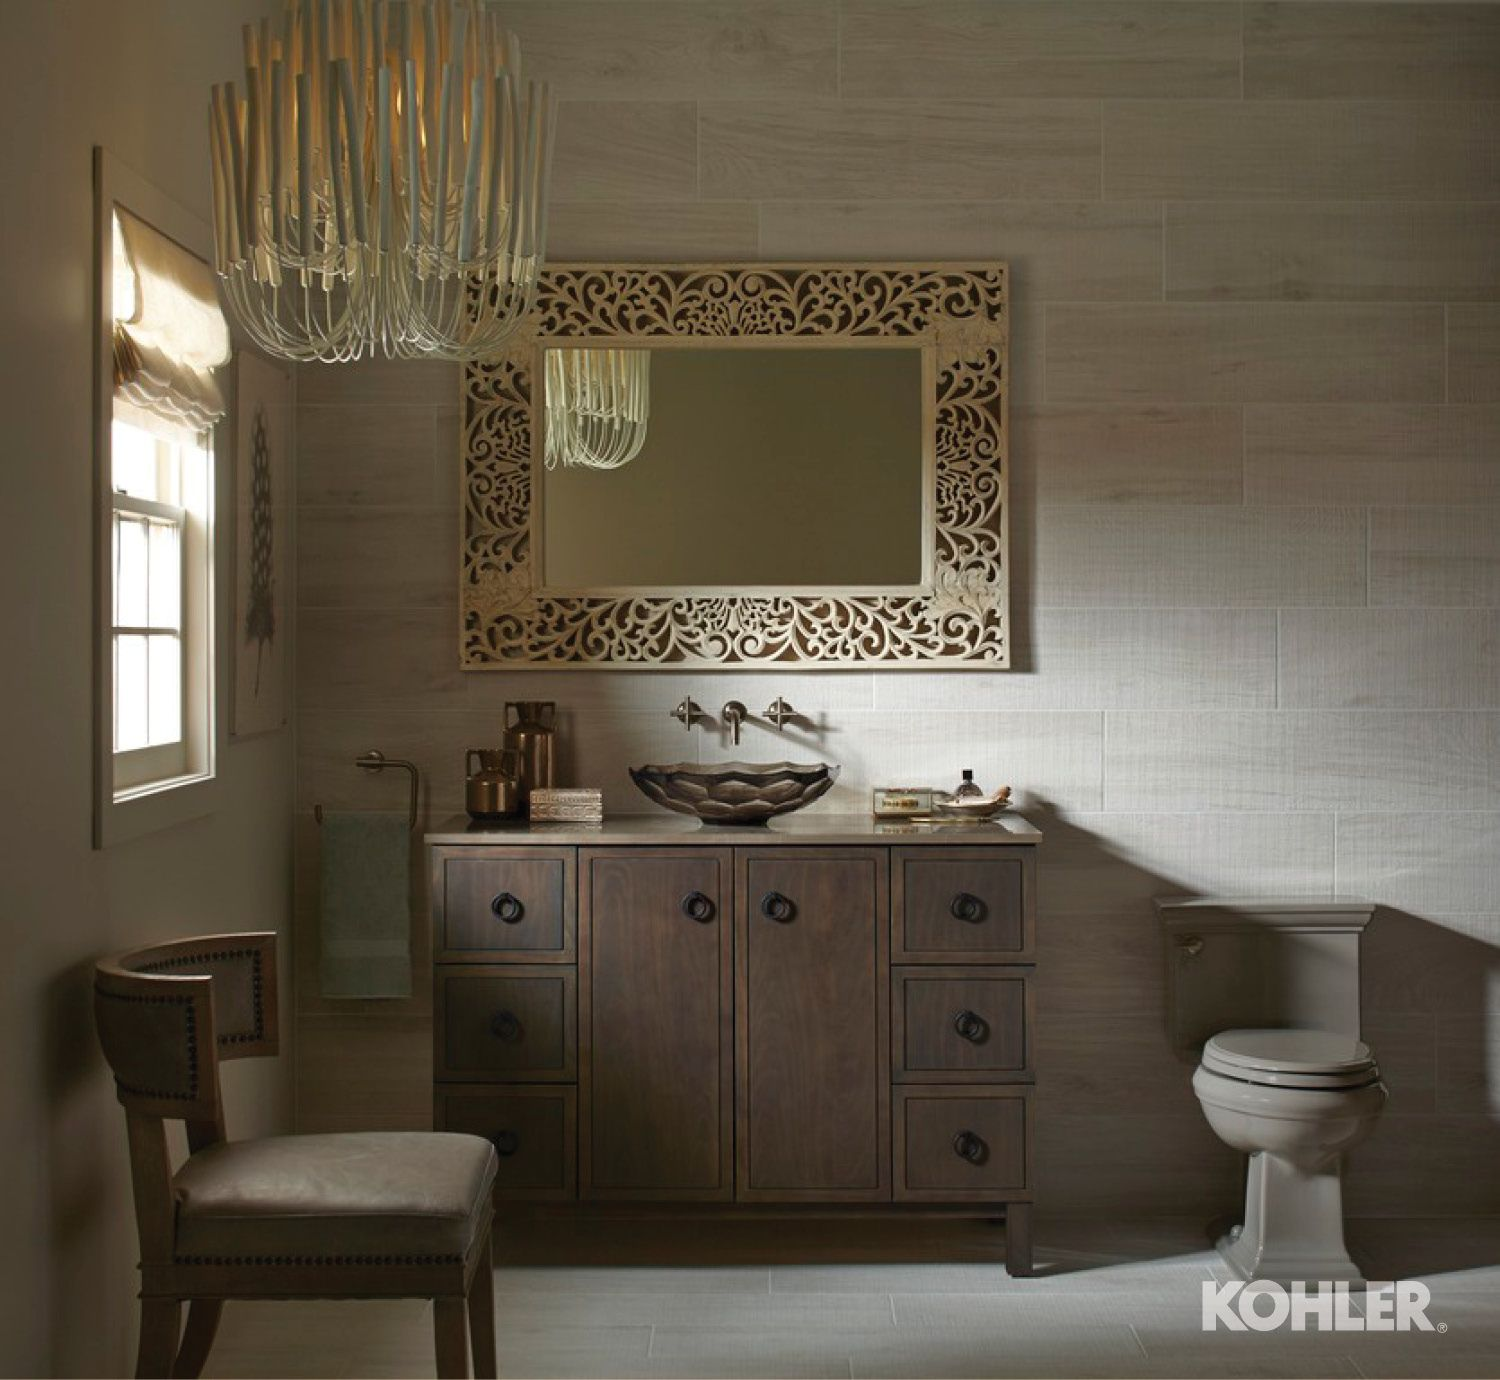 Dusky neutrals and delicate artistry create a quiet, evocative styling space. http://www.us.kohler.com/us/Briolette™-Vessel-faceted-glass-bathroom-sink/productDetail/Glass/427314.htm?skuId=1031100&brandId=1007205&pageName=globalSearch&&_requestid=3130913